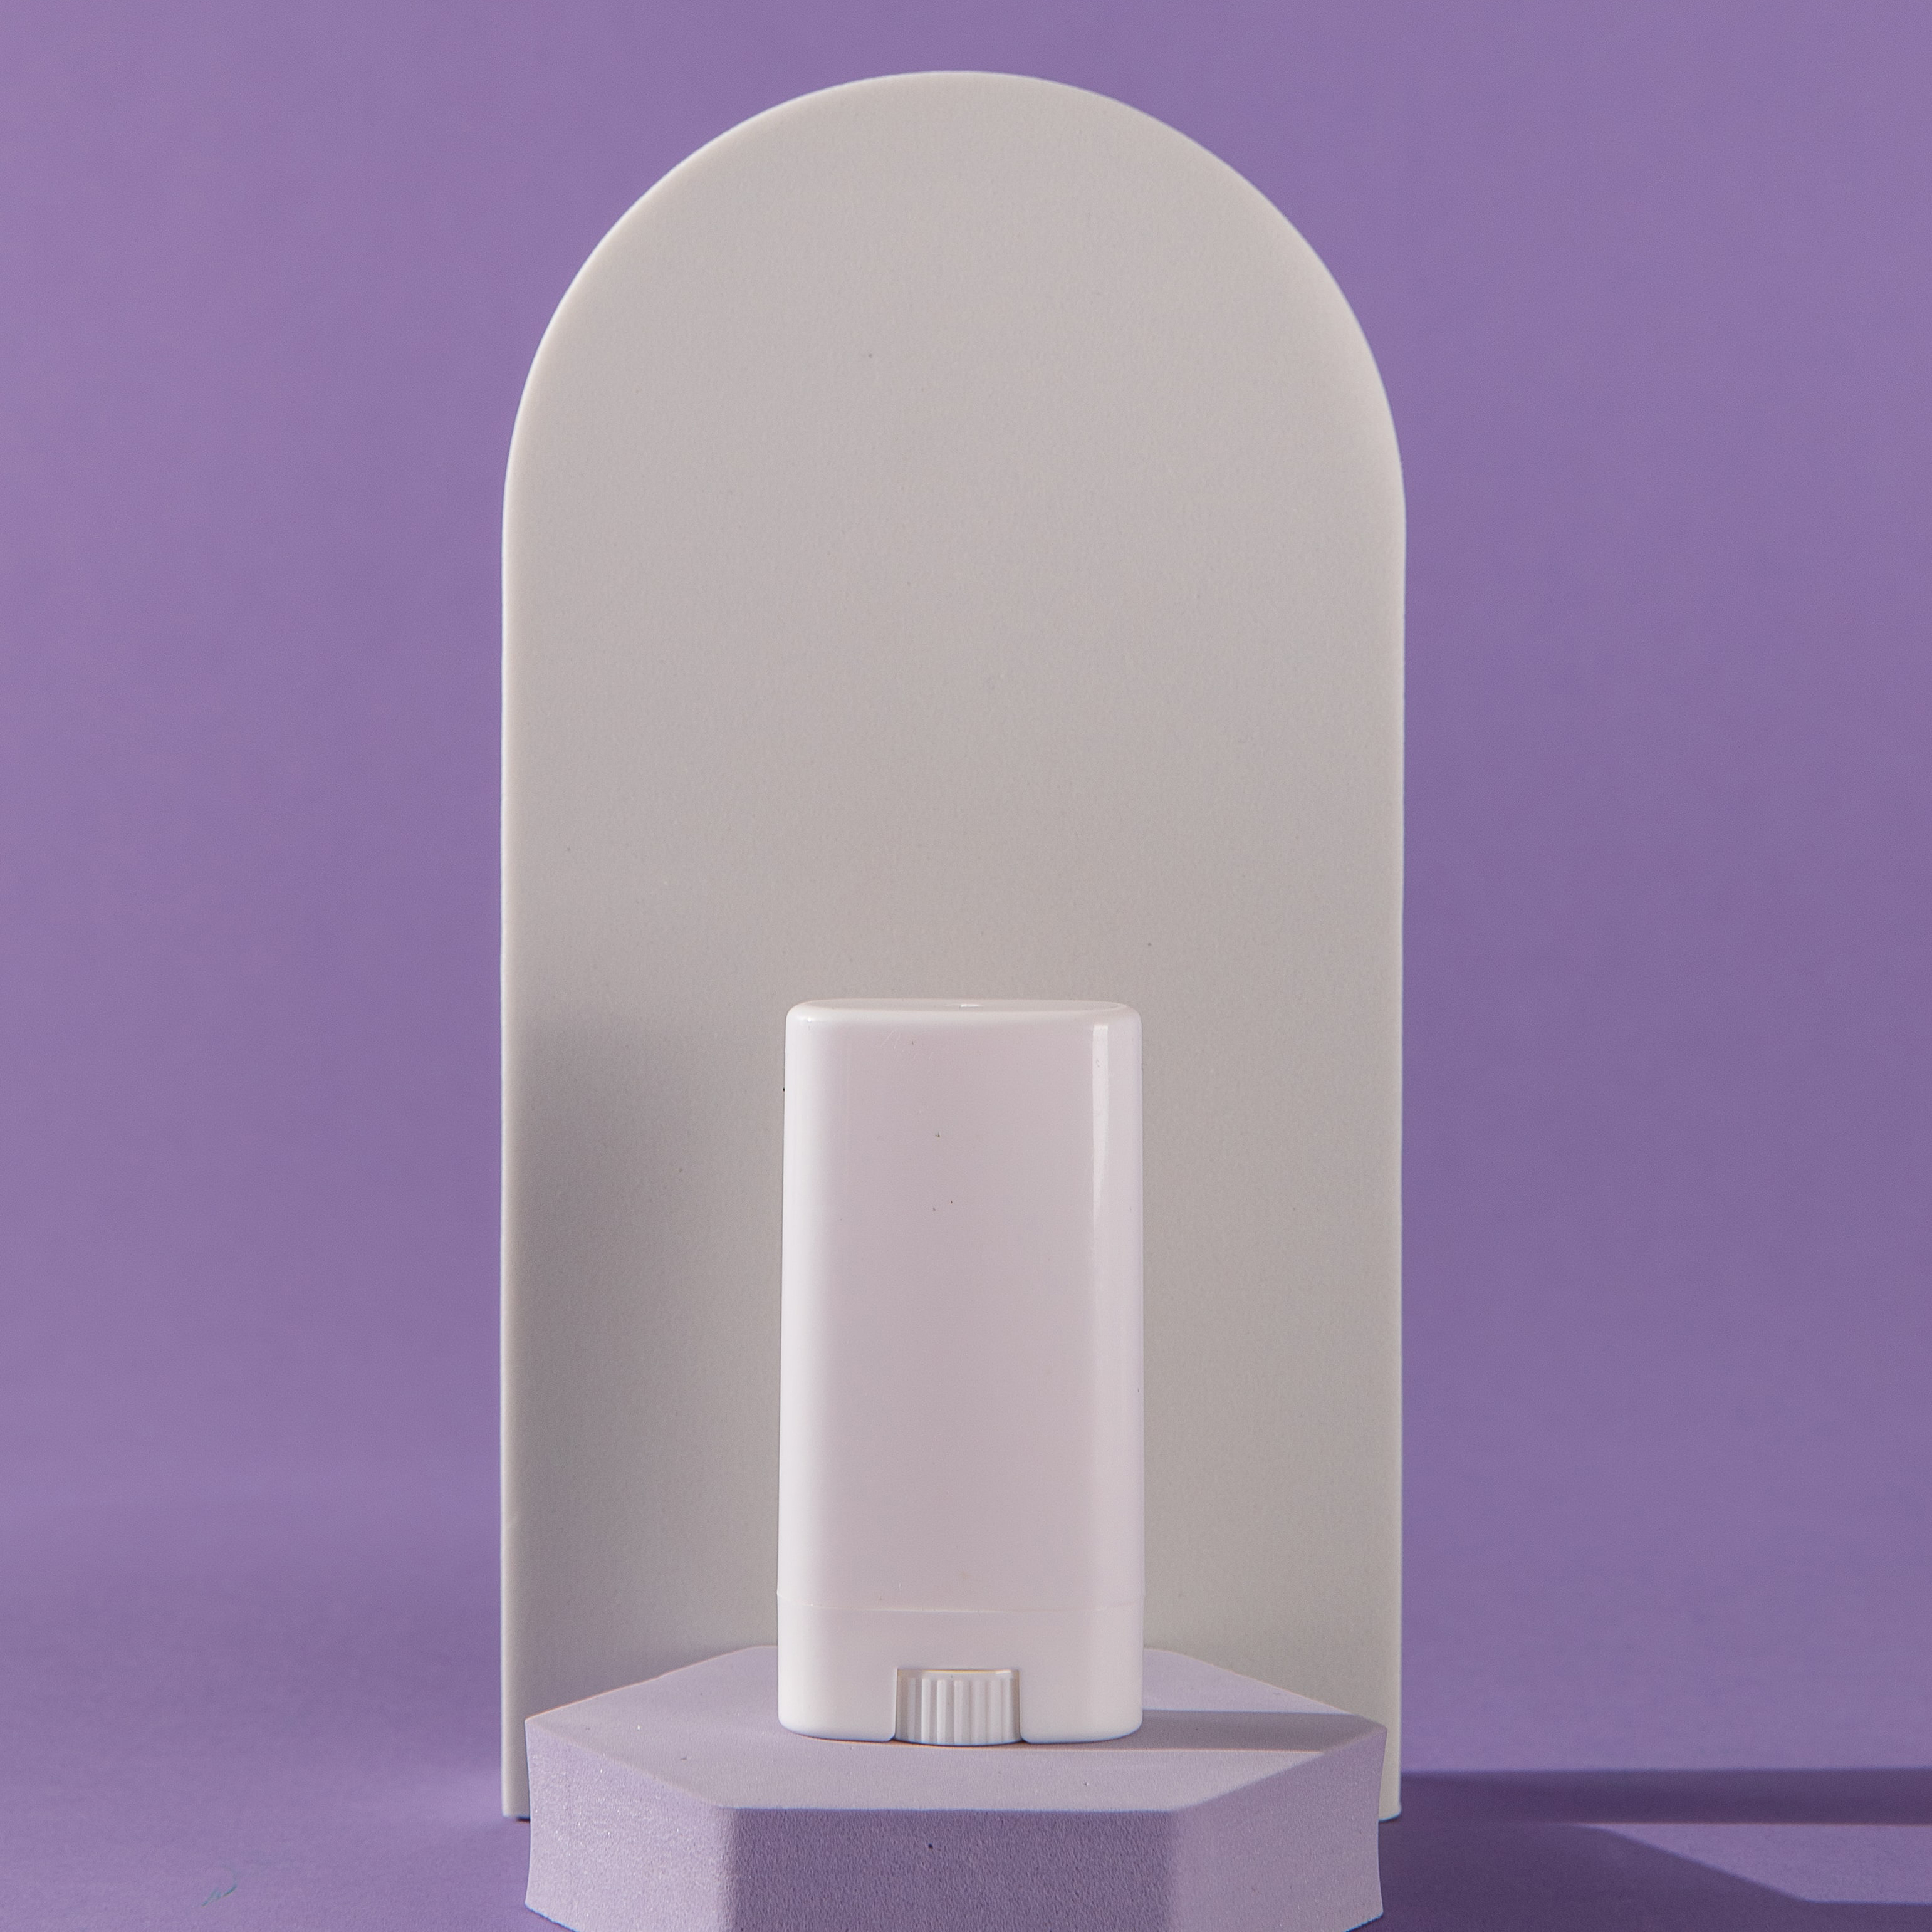 plain stick of deodorant on top of a small stand and all underneath an arch background